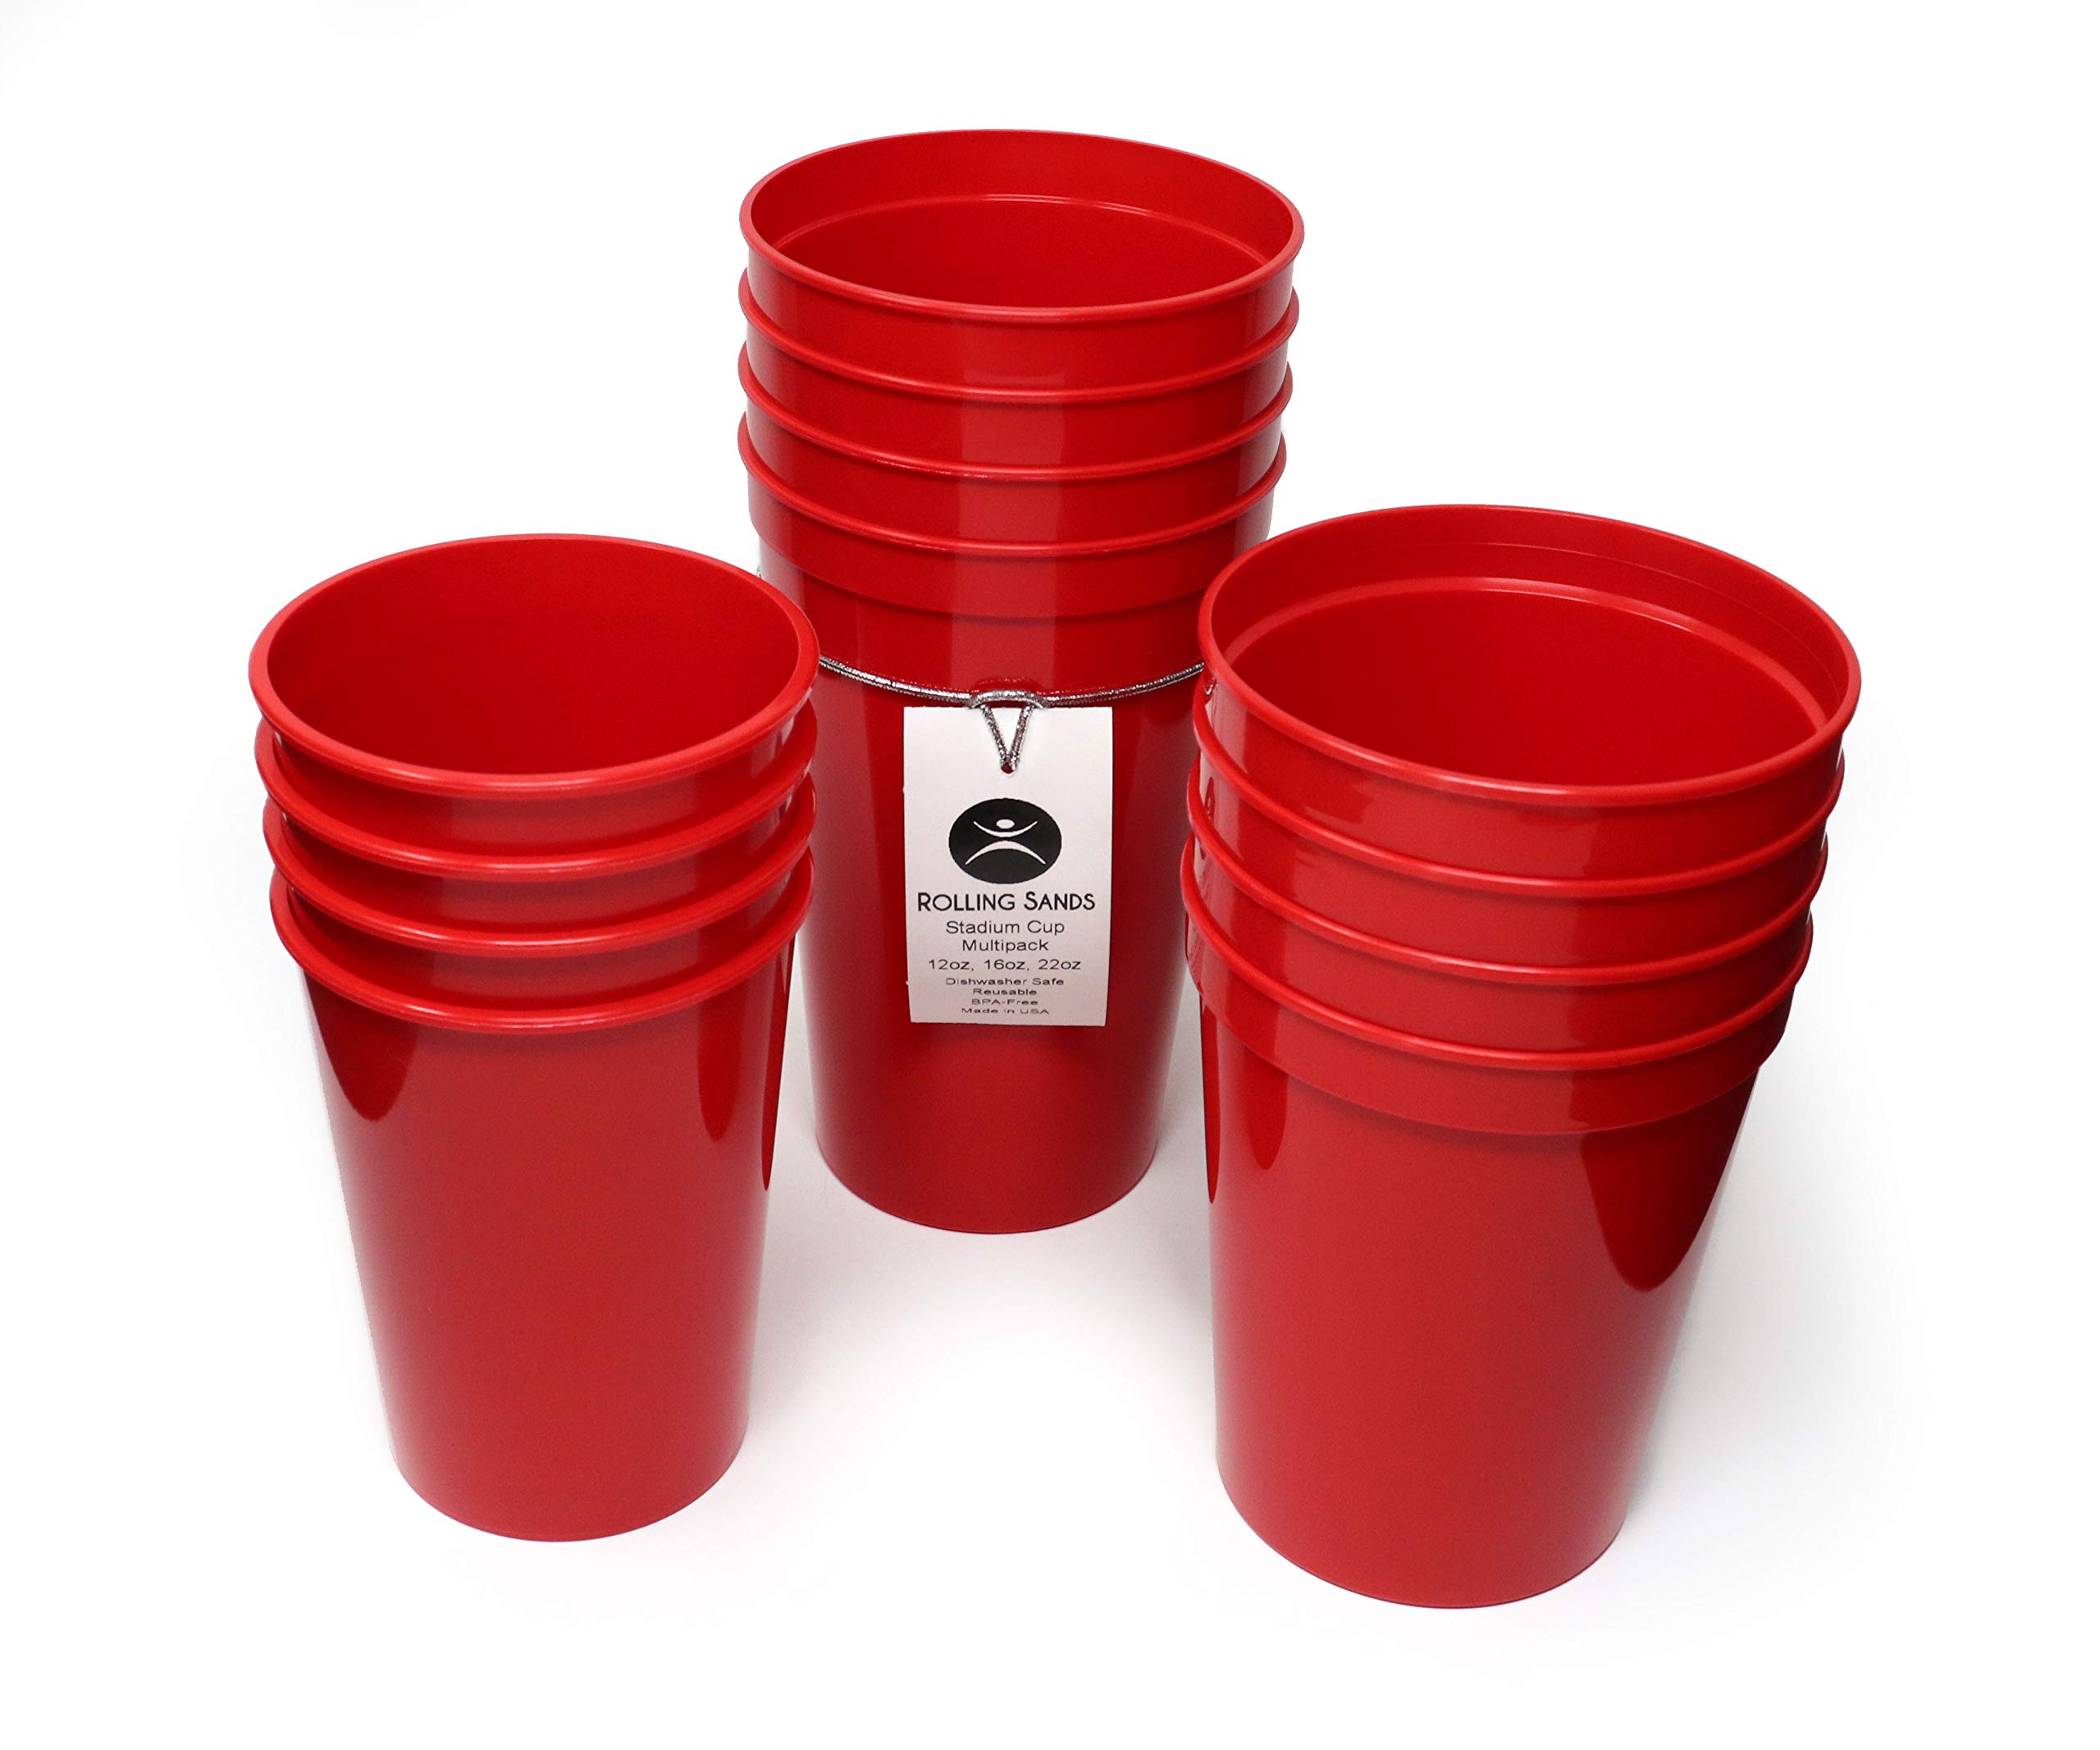 Rolling Sands 12 Pack Reusable Plastic Stadium Cups, Multipack of 3 Cup Sizes - 12oz, 16oz, 22oz – Made in USA, BPA-Free, Dishwasher Safe Plastic Tumblers - Set Includes 4 Red Cups of Each Size